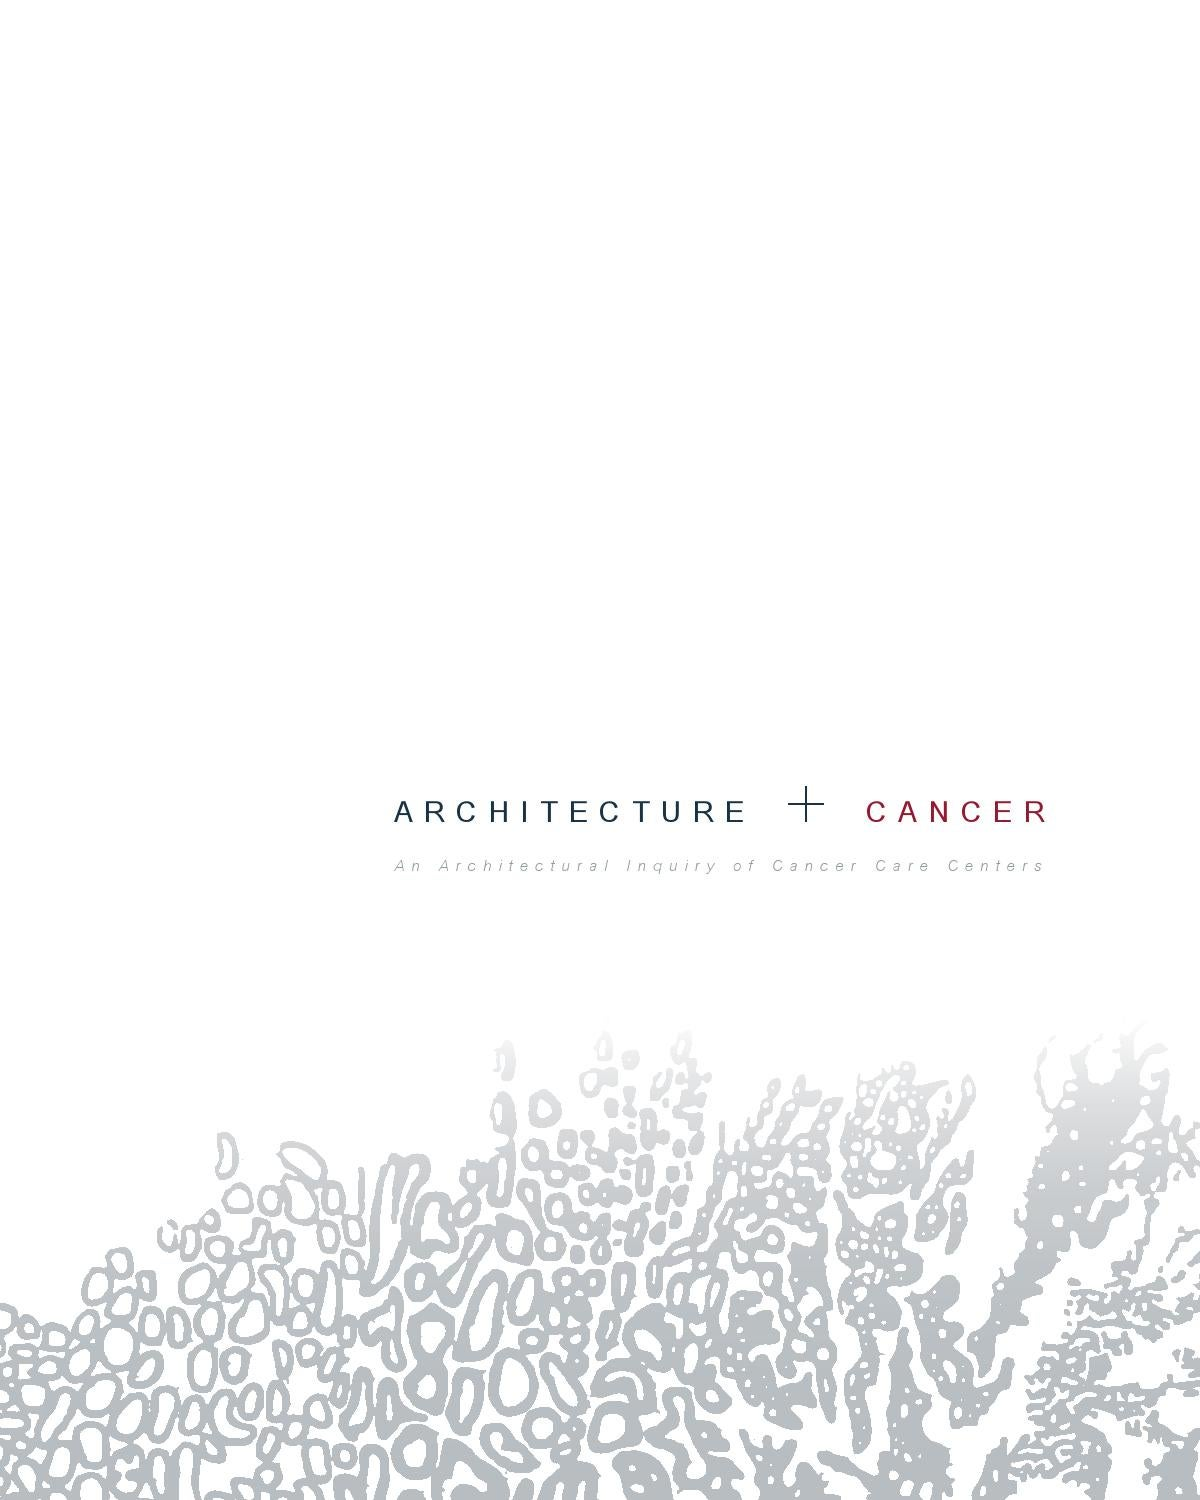 Architecture + Cancer by Austin Miles - issuu